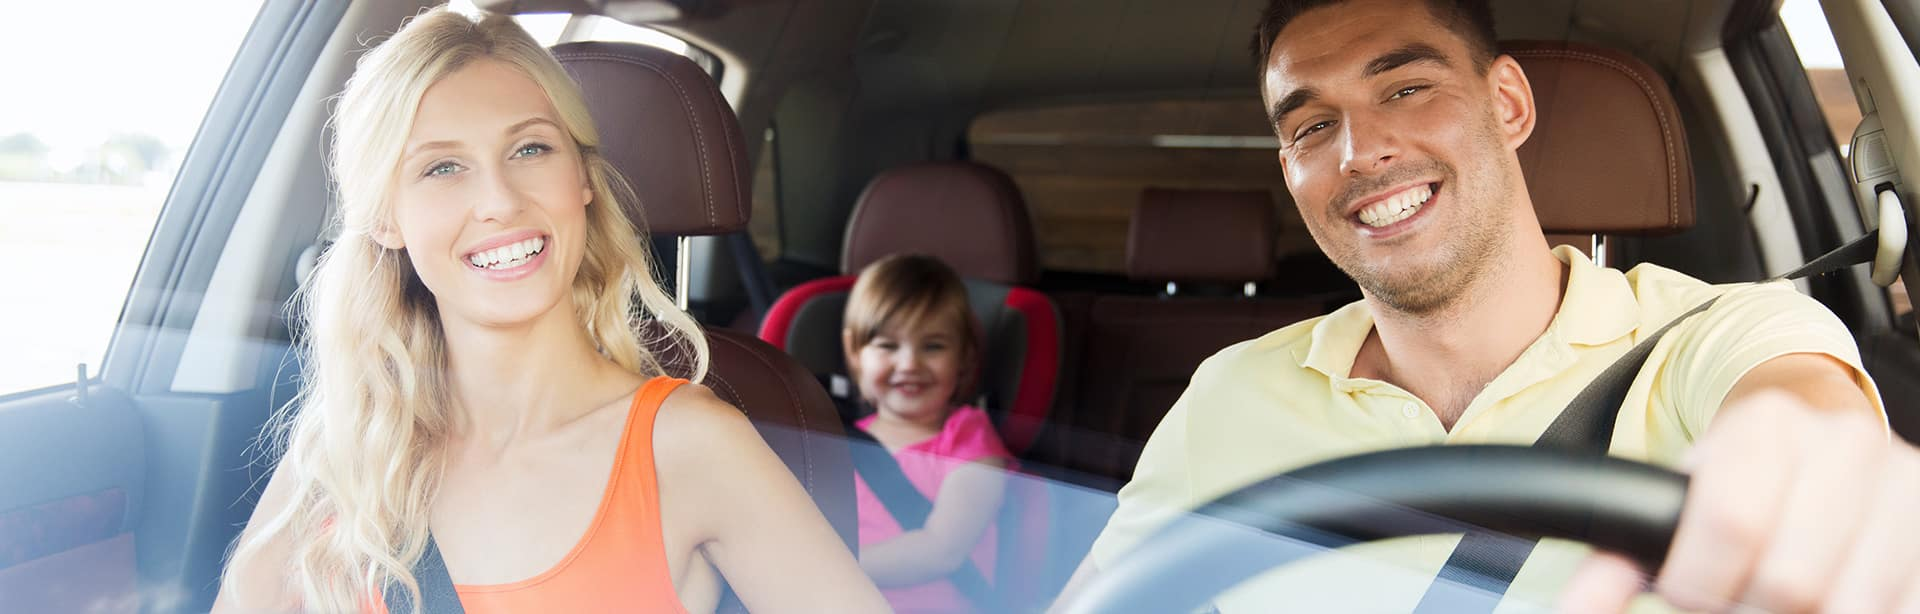 Summer Driving Advice to Heed Before Your Road Trip